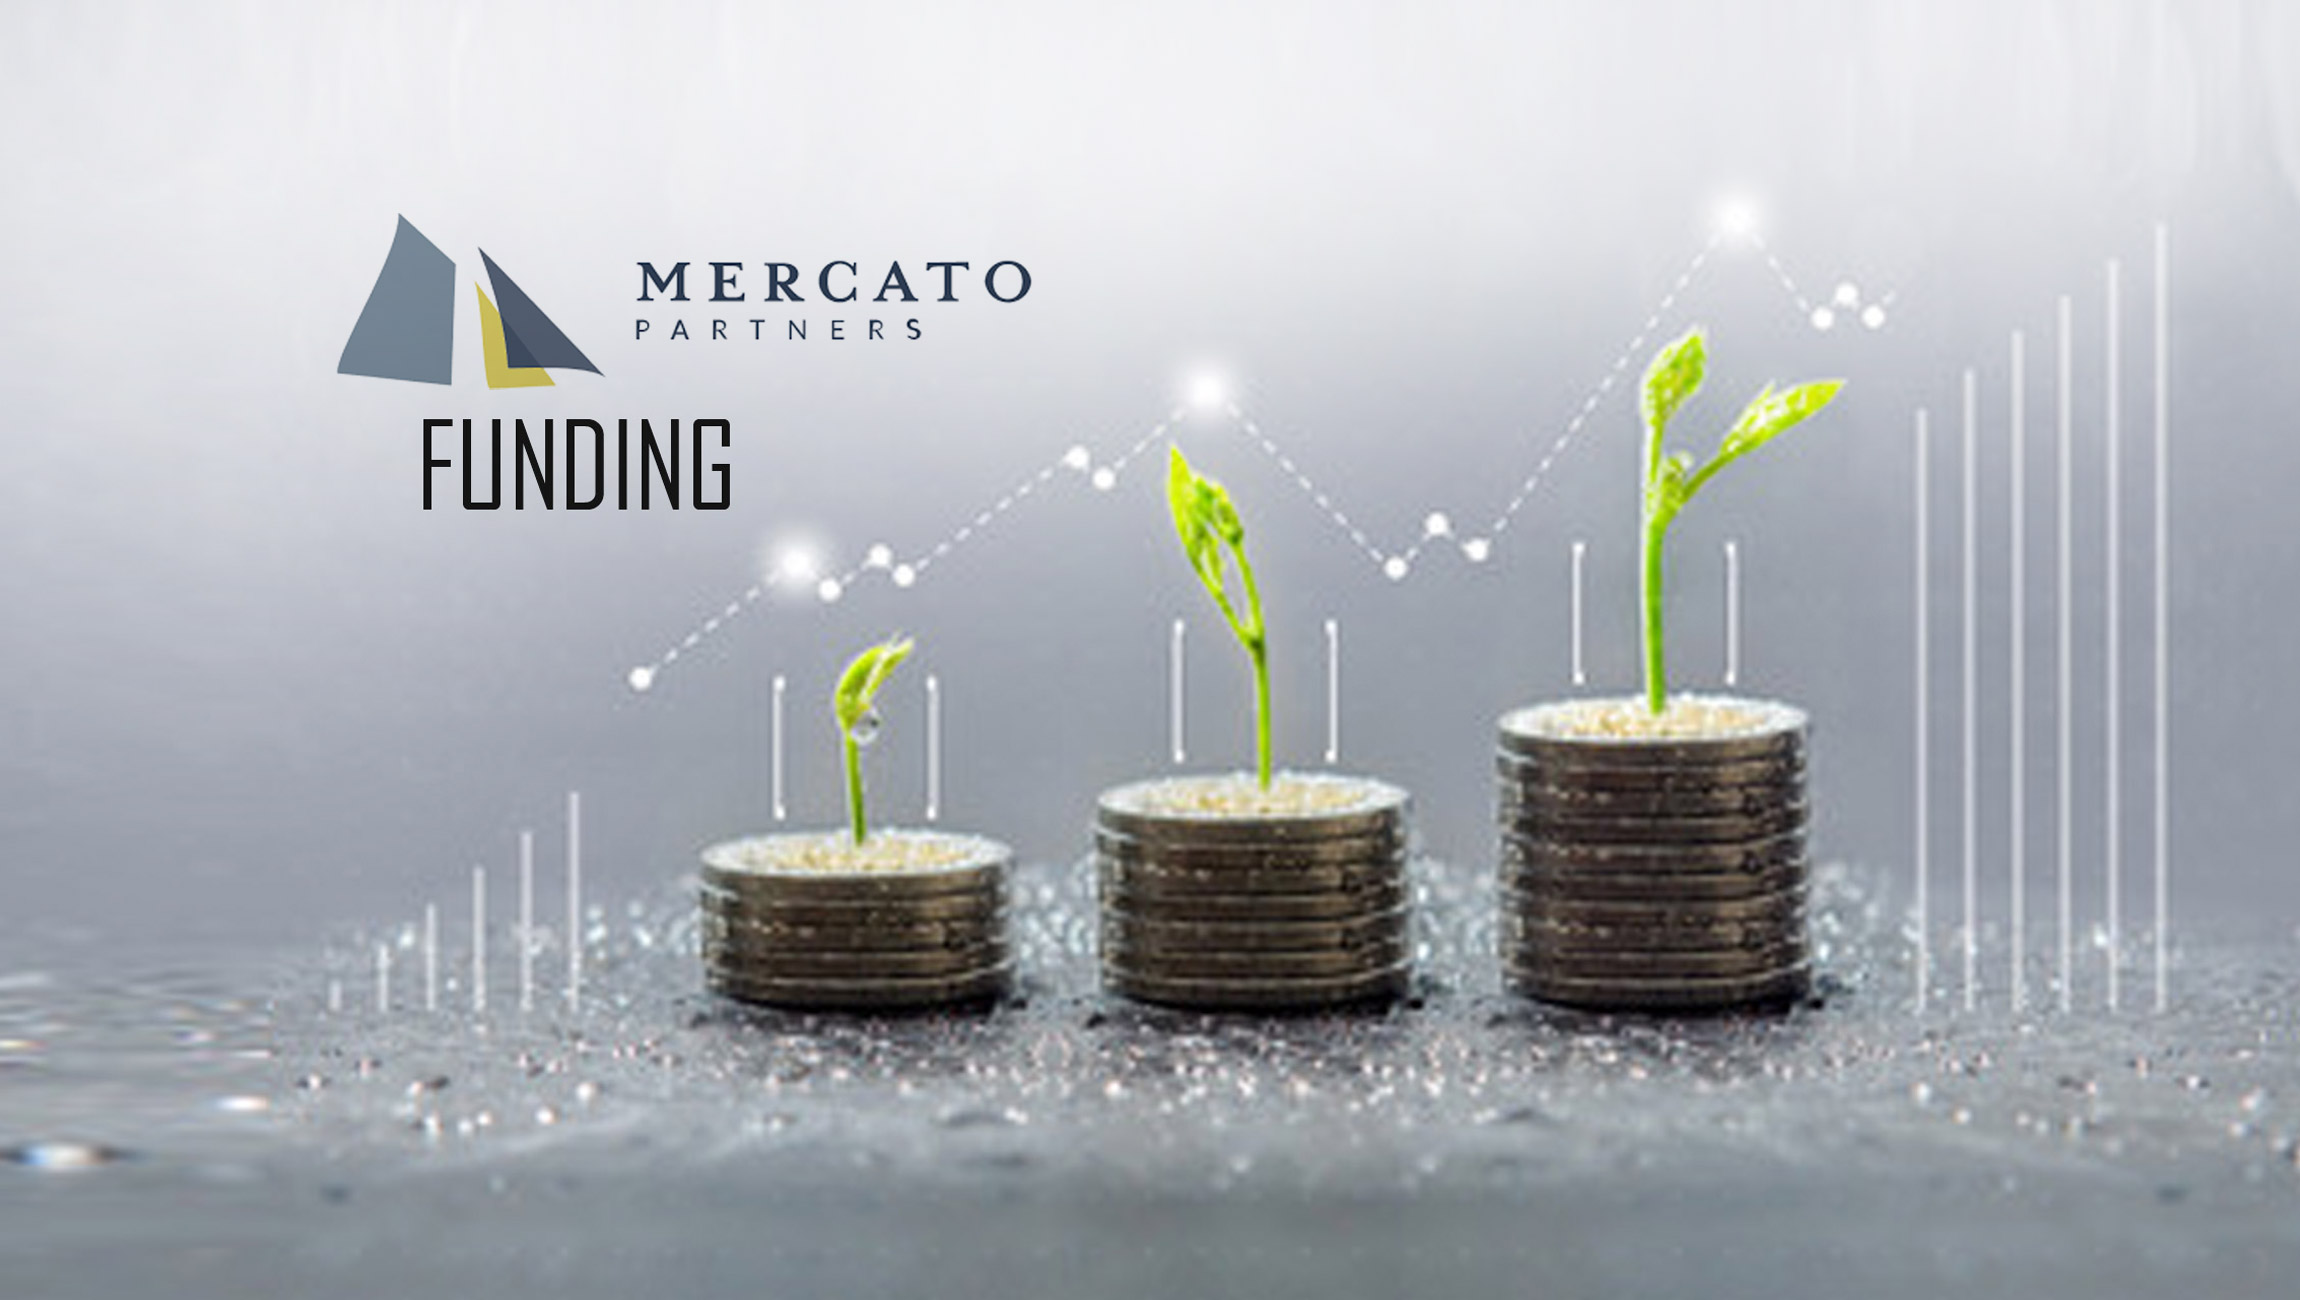 Mercato-Partners-Leads-Seed-Investment-in-FreightPOP-Through-Prelude-Fund